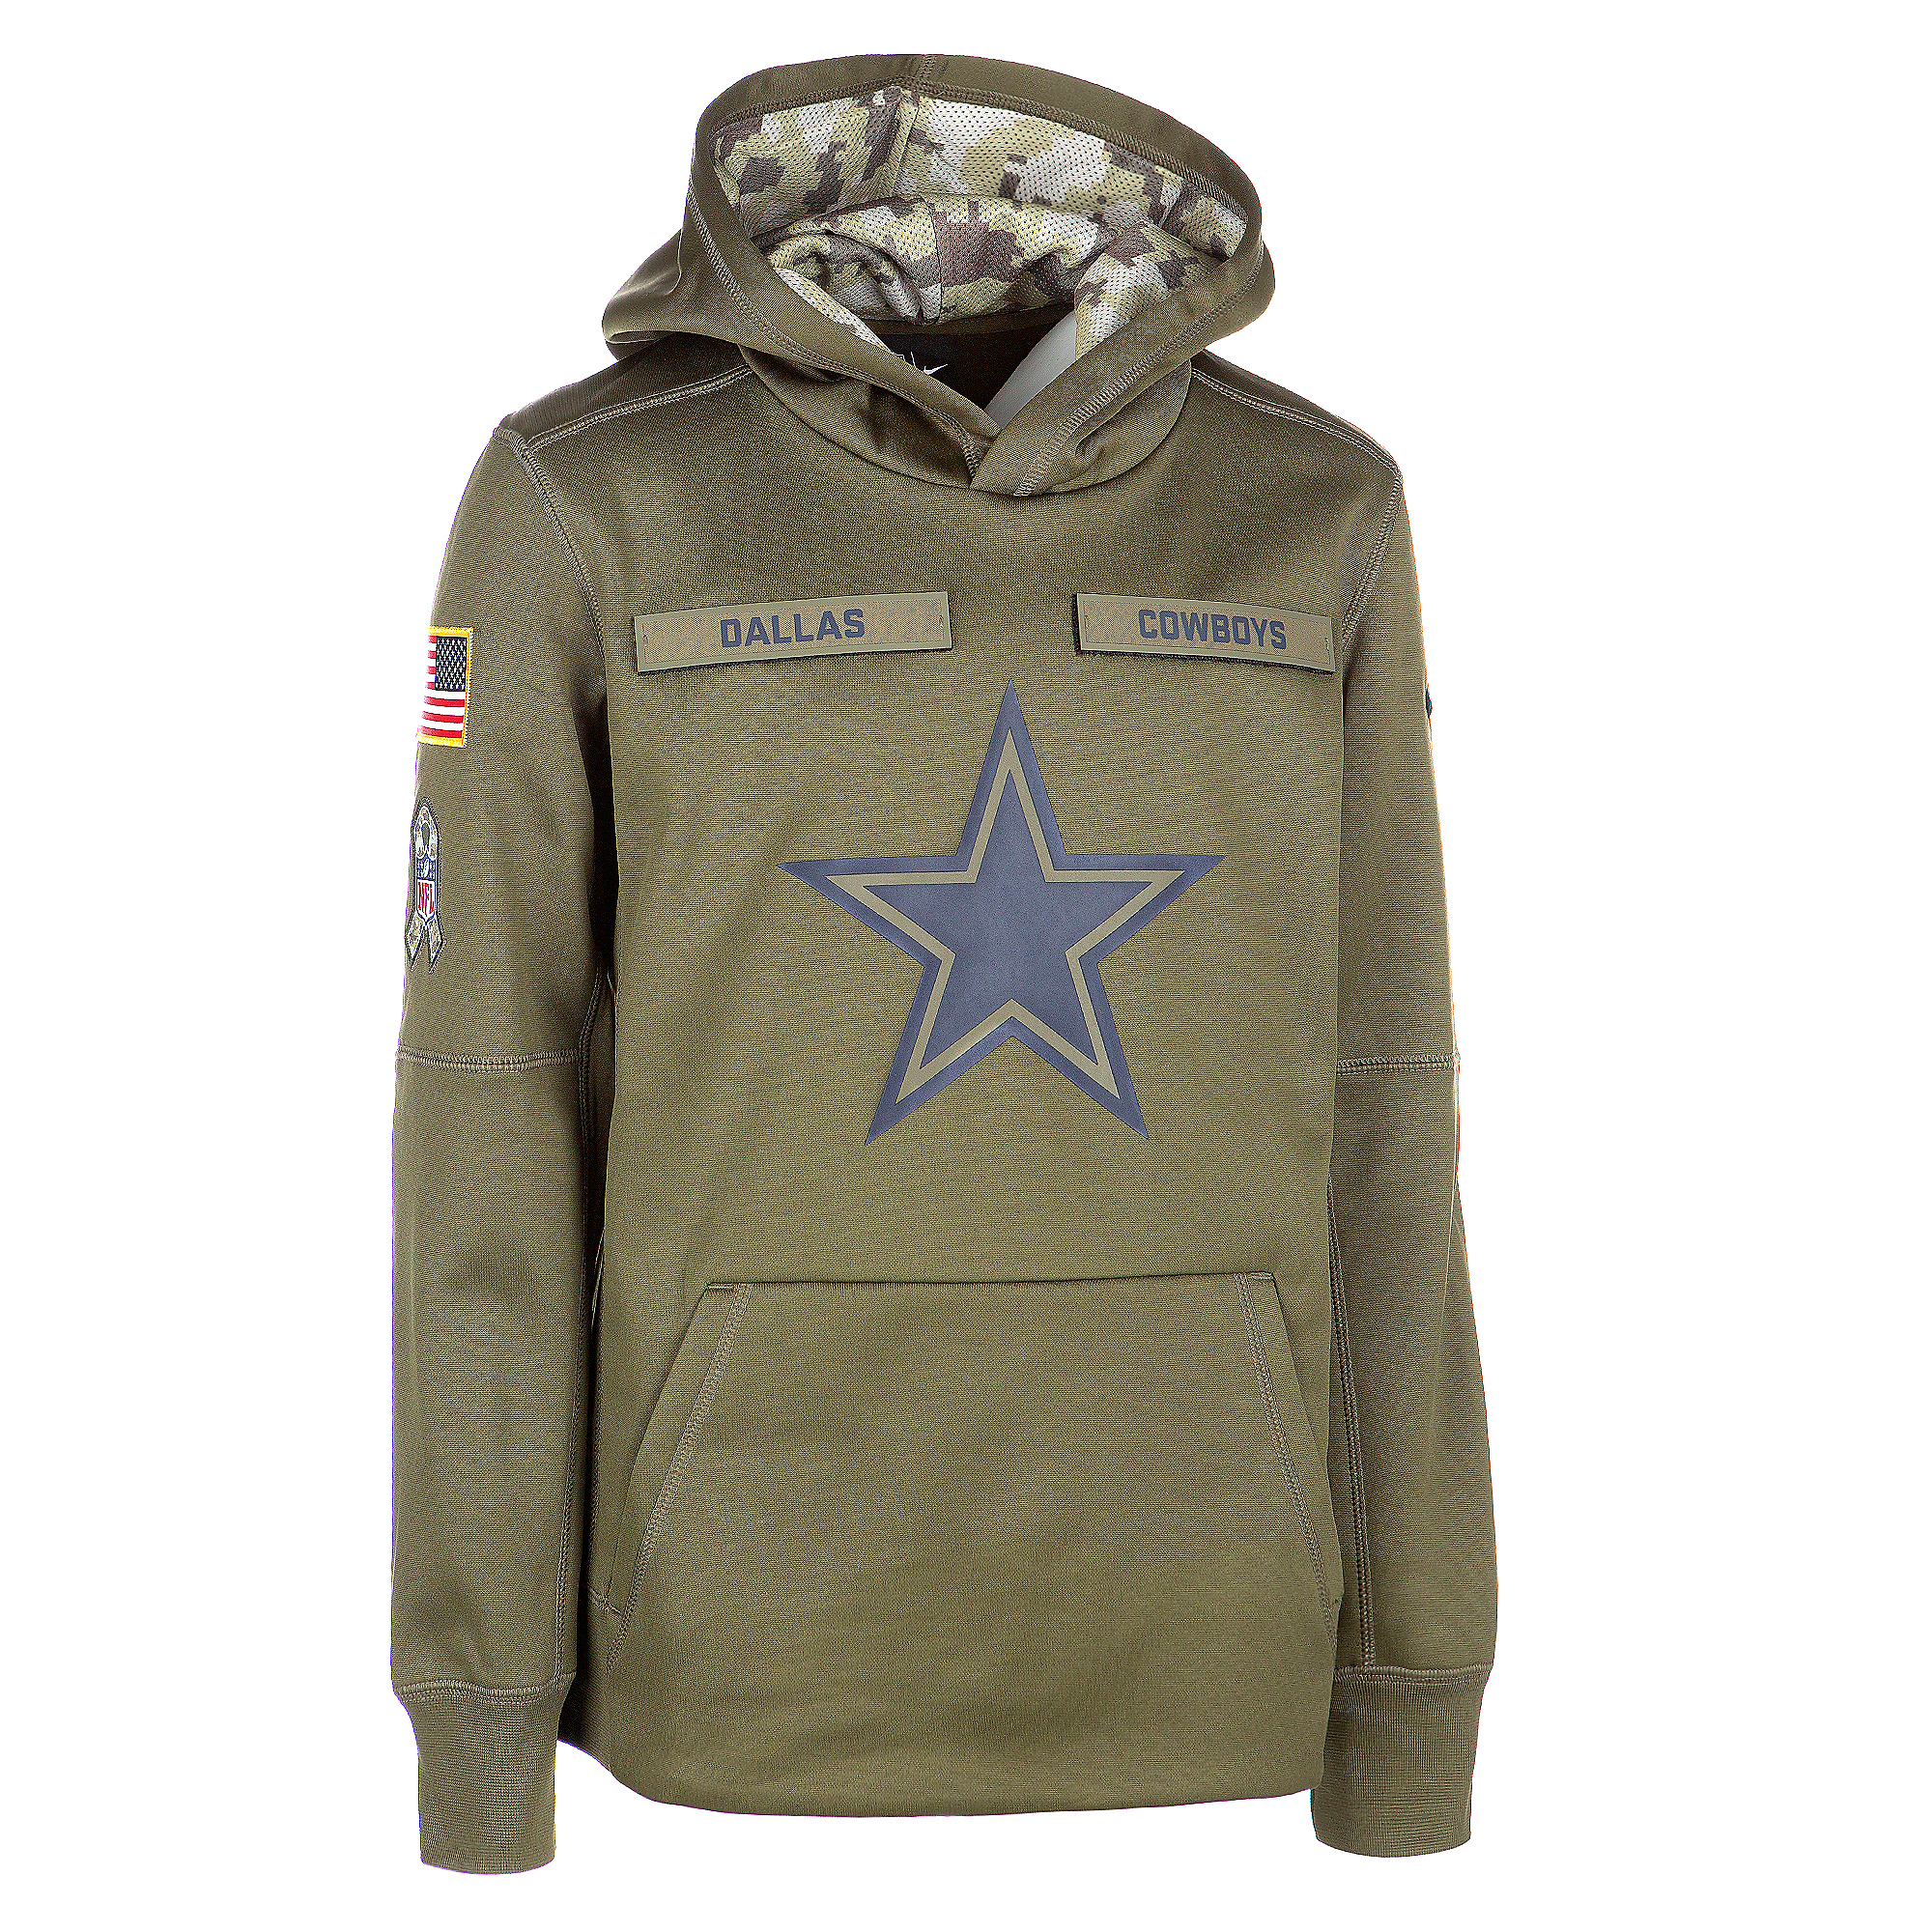 buy online a2191 9644e Dallas Cowboys Nike Salute to Service Youth Hoody | Dallas Cowboys Pro Shop